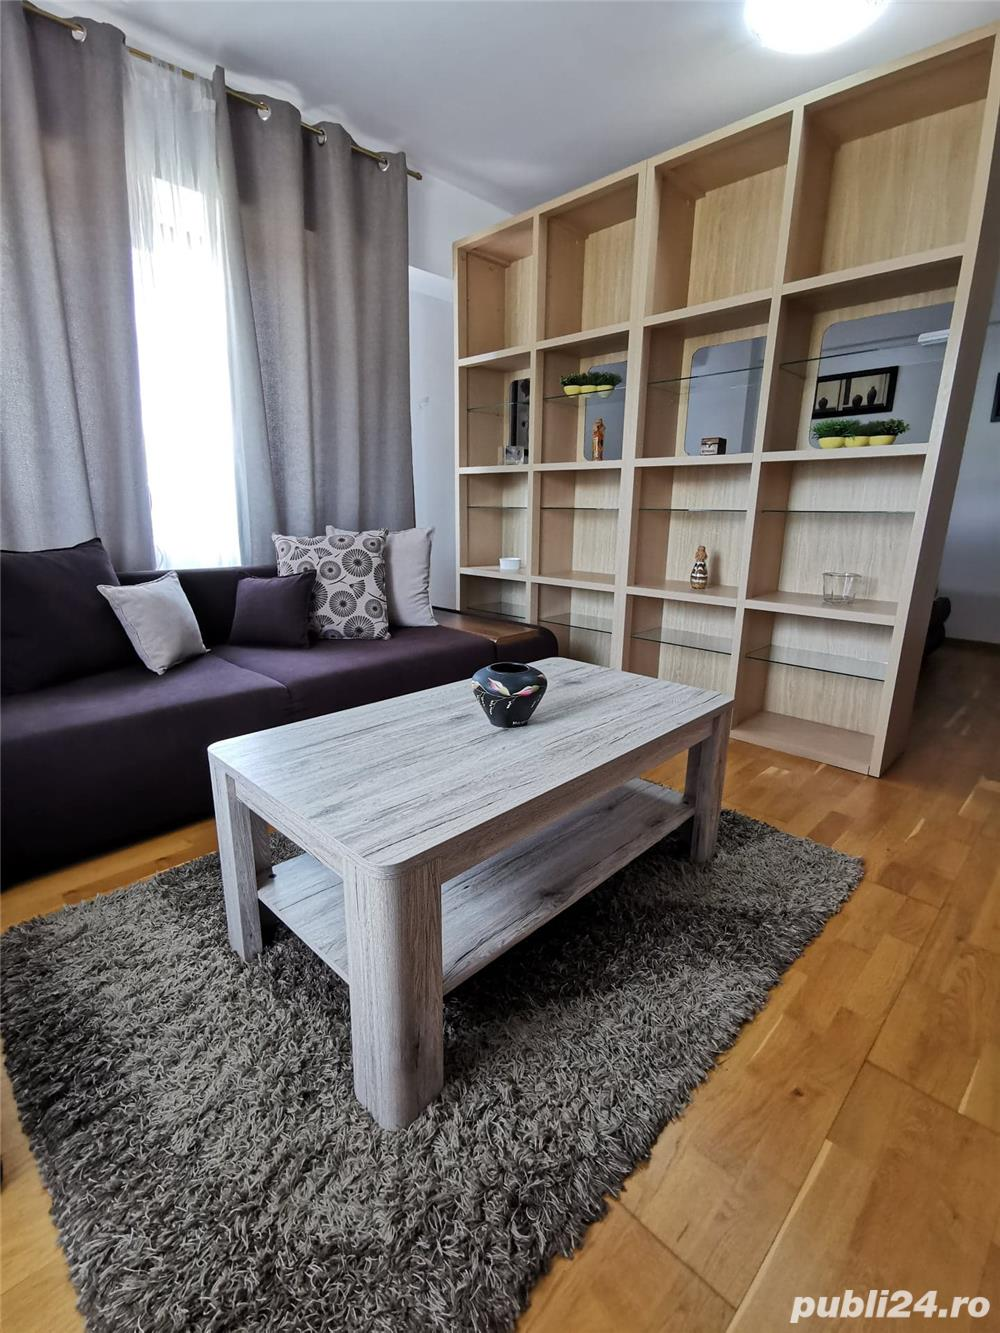 Apartament 1 camera in bloc NOU, C.A. Rosetti